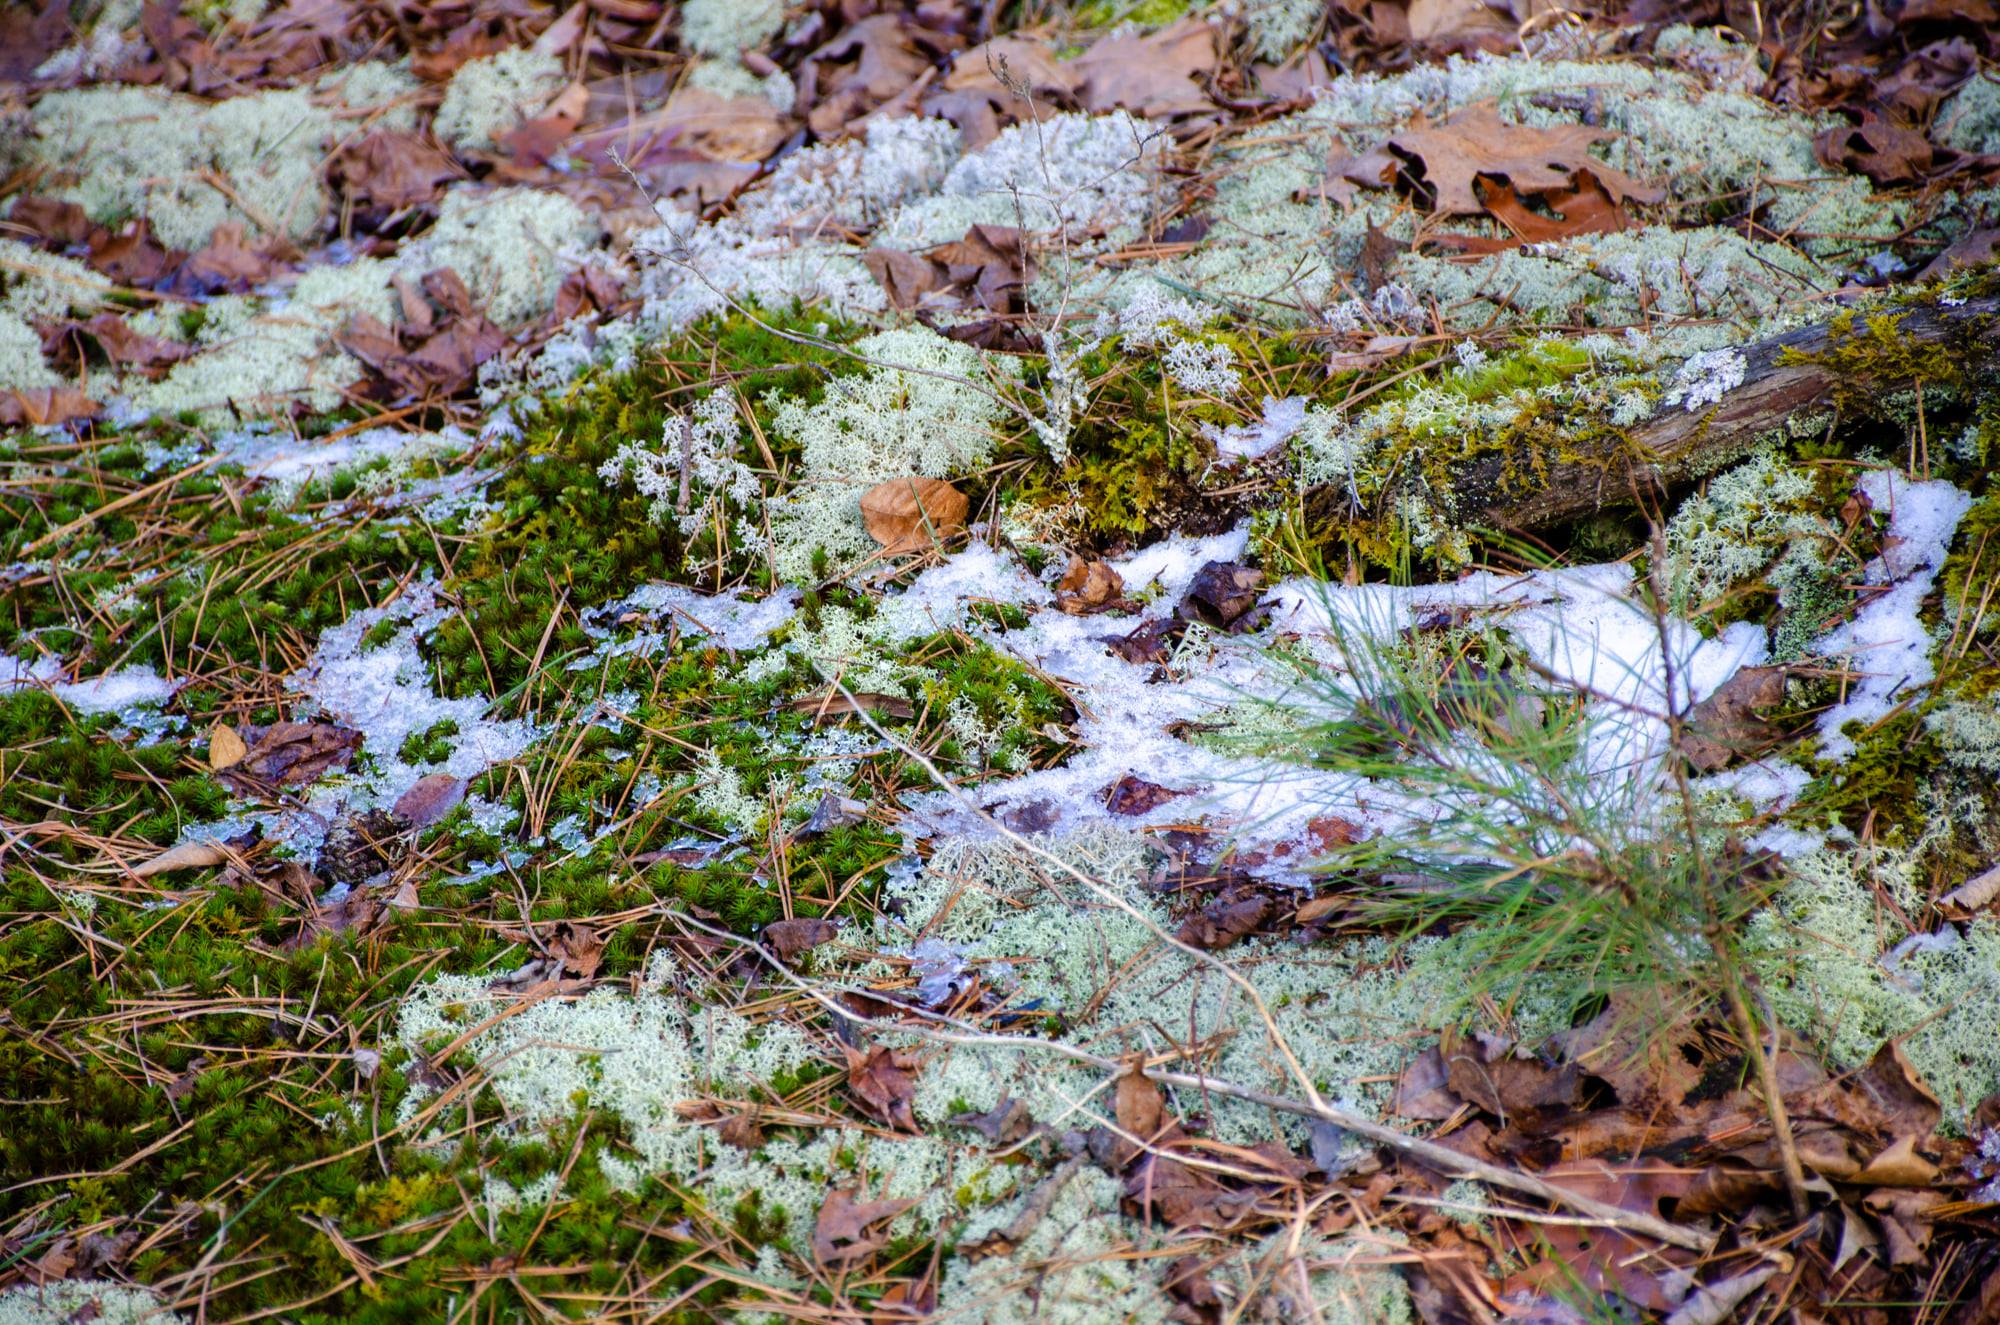 snow peaks out from moss